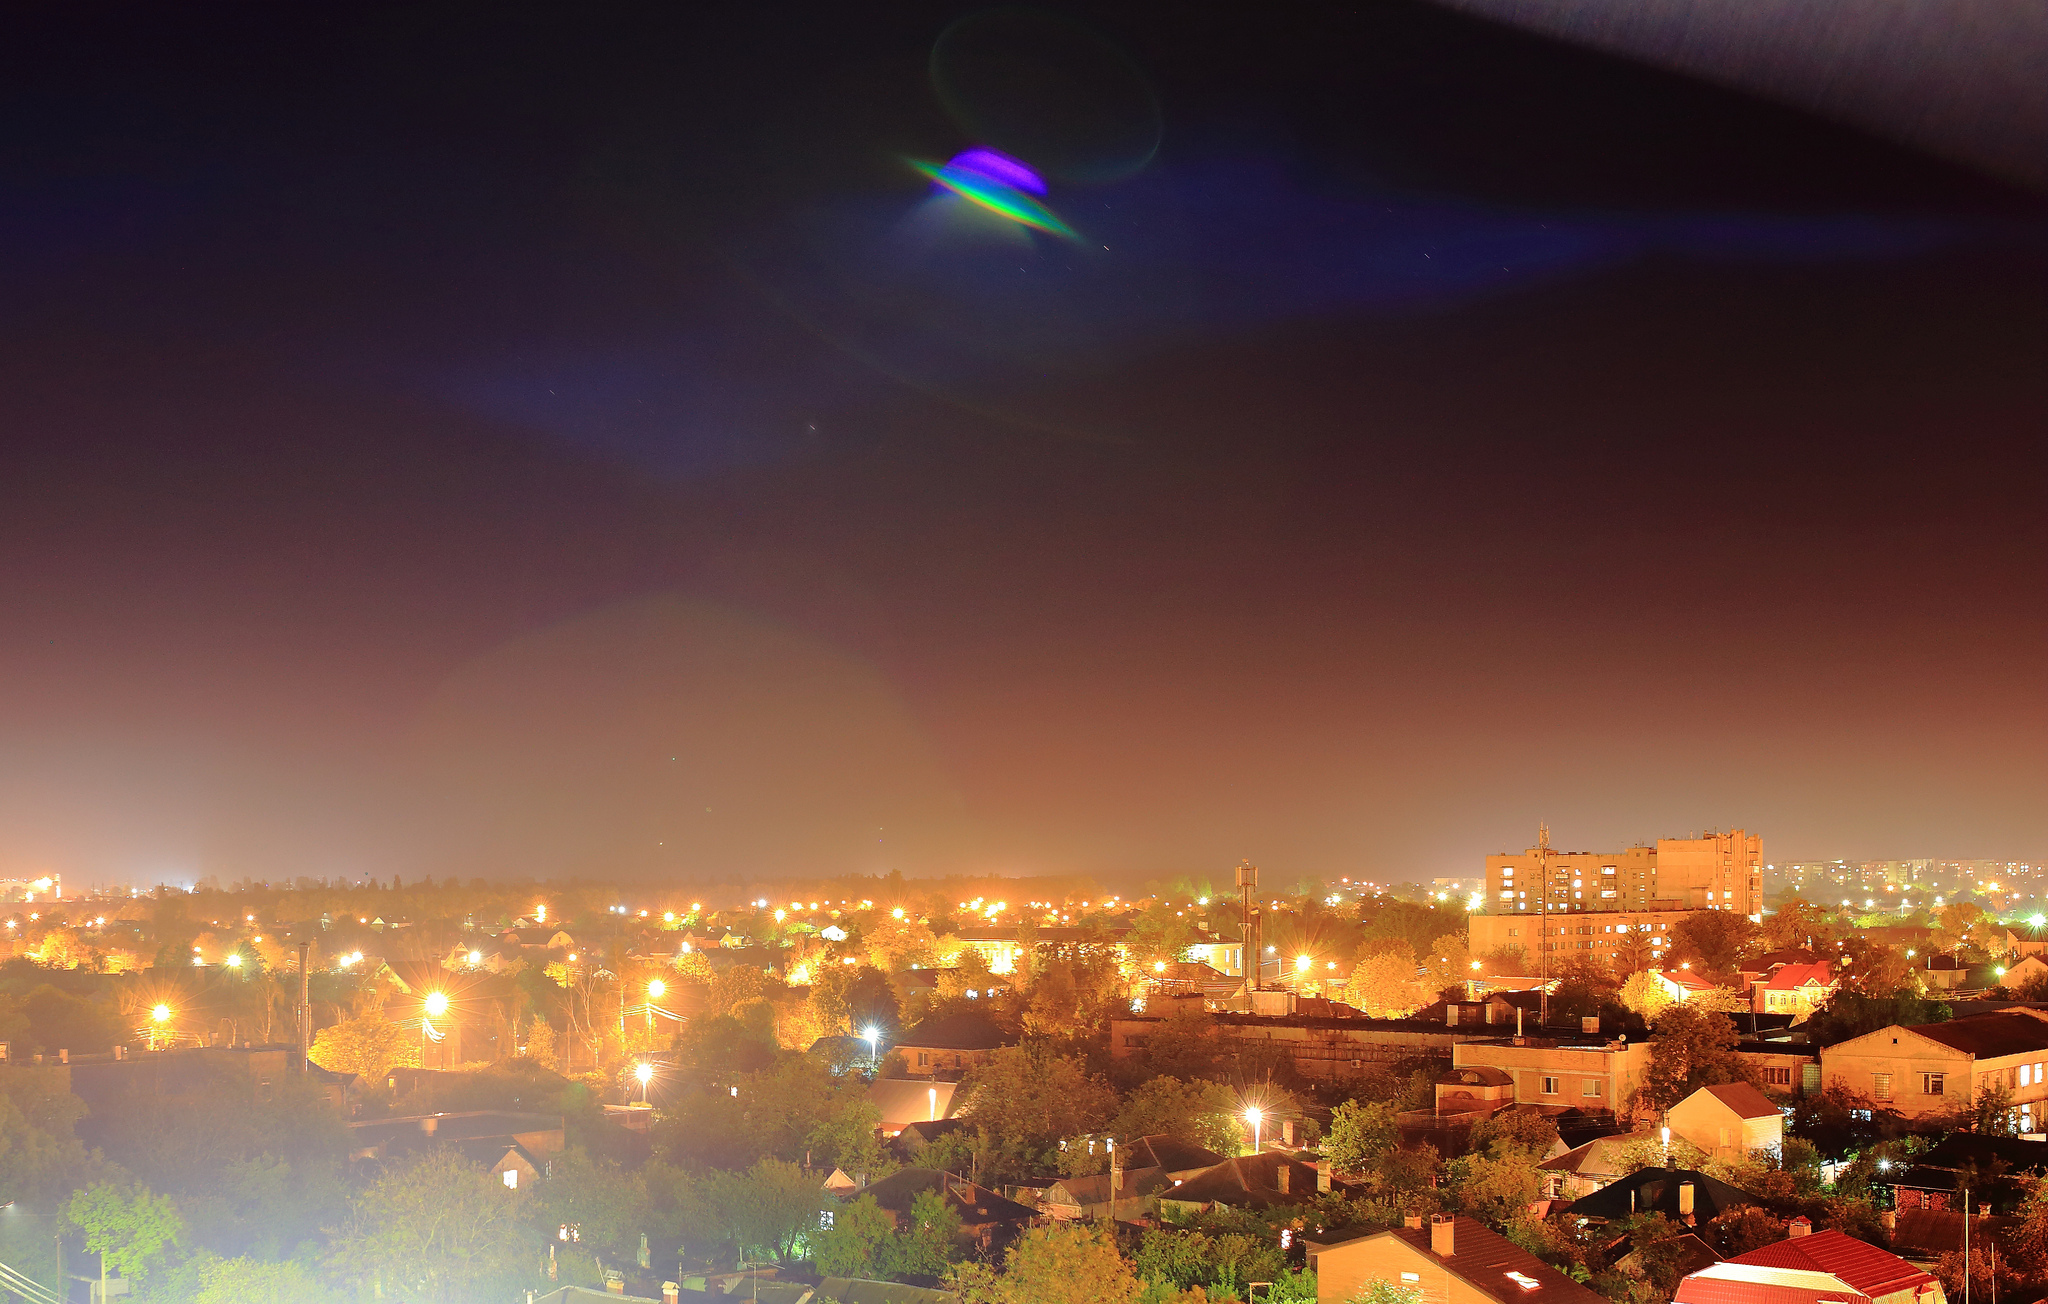 UFO off California? Streaking light was missile test